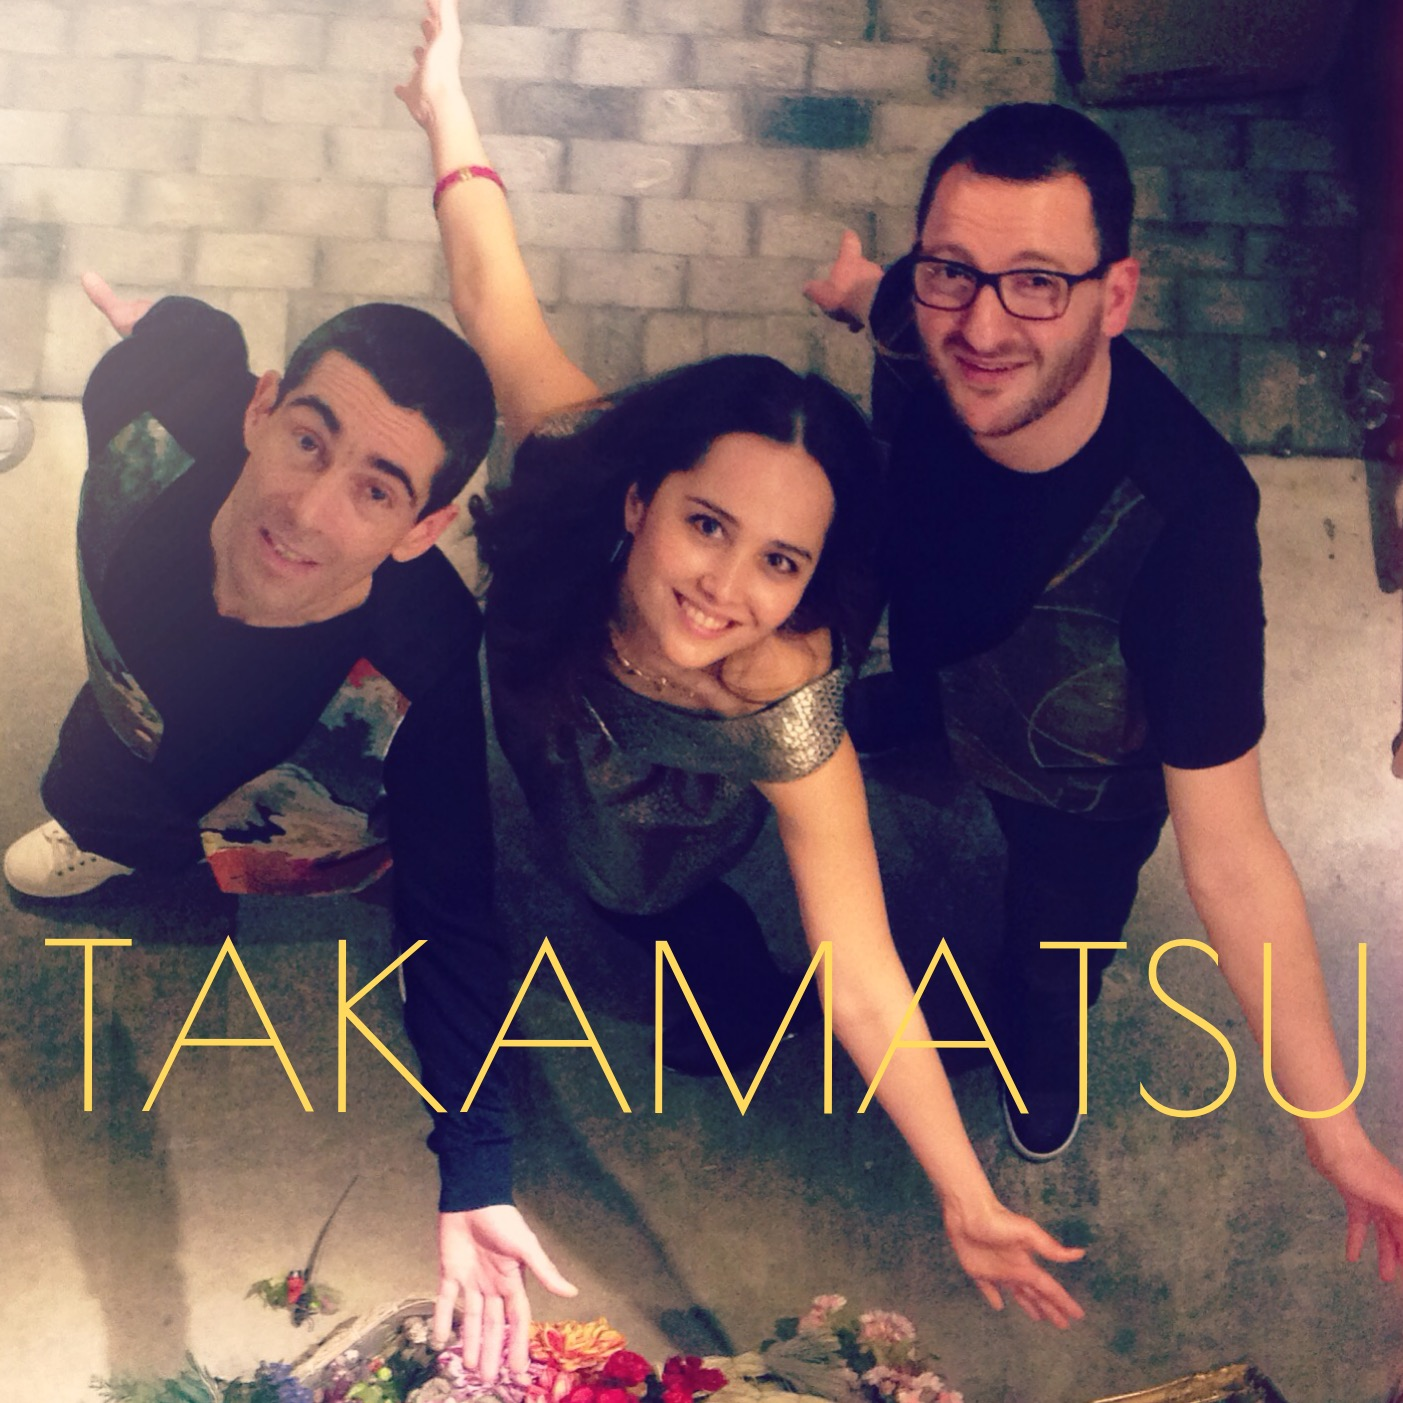 Japan trio tour 2016 @takamatsu